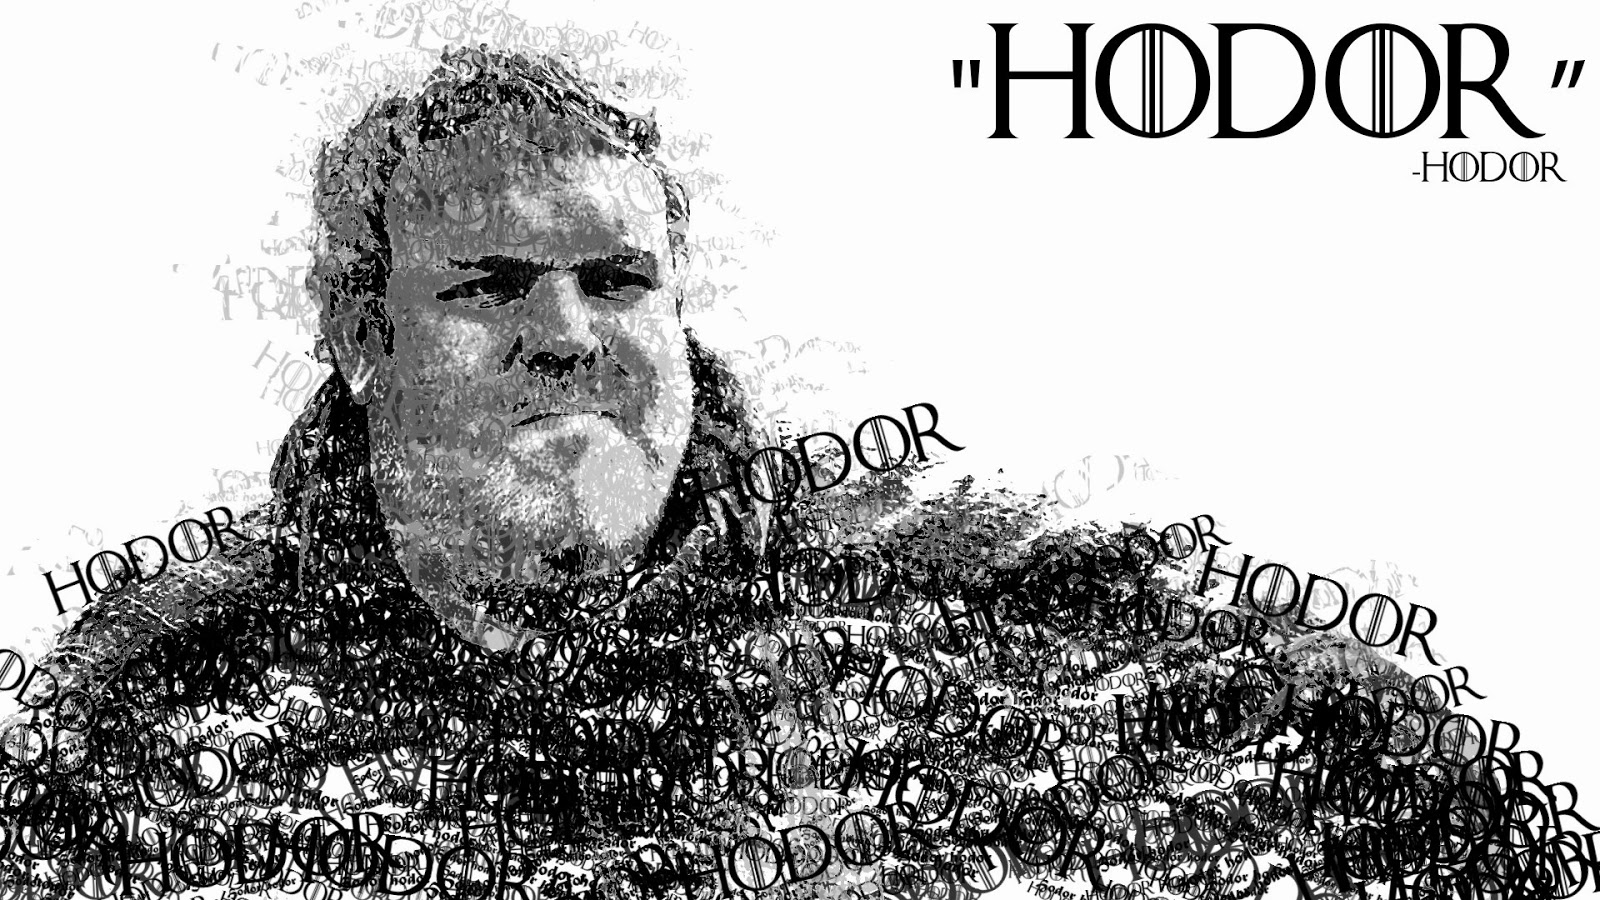 hodor made up of hodor game of thrones memes